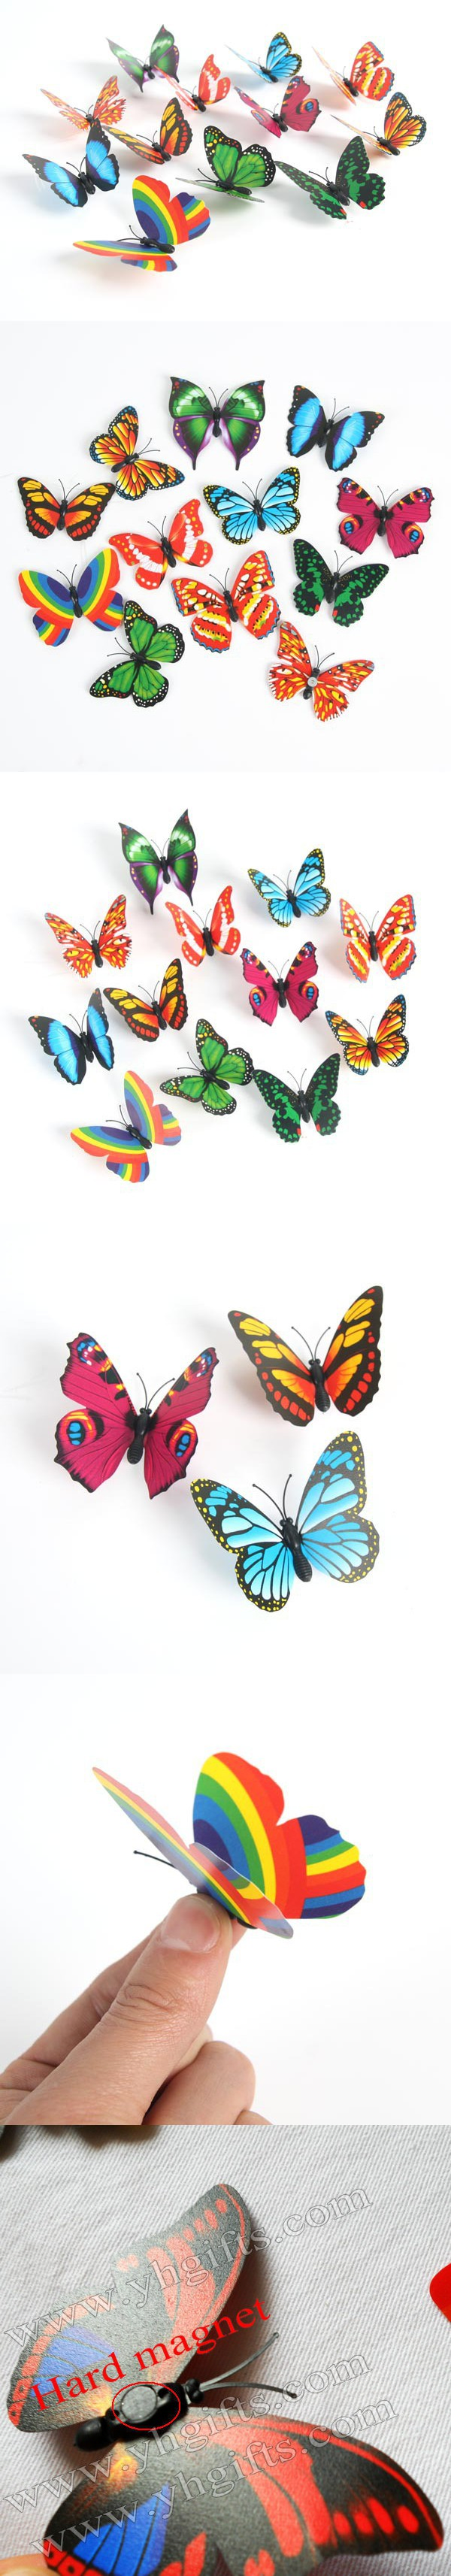 LOT Plastic butterfly fridge magnets Kids toys Early educational